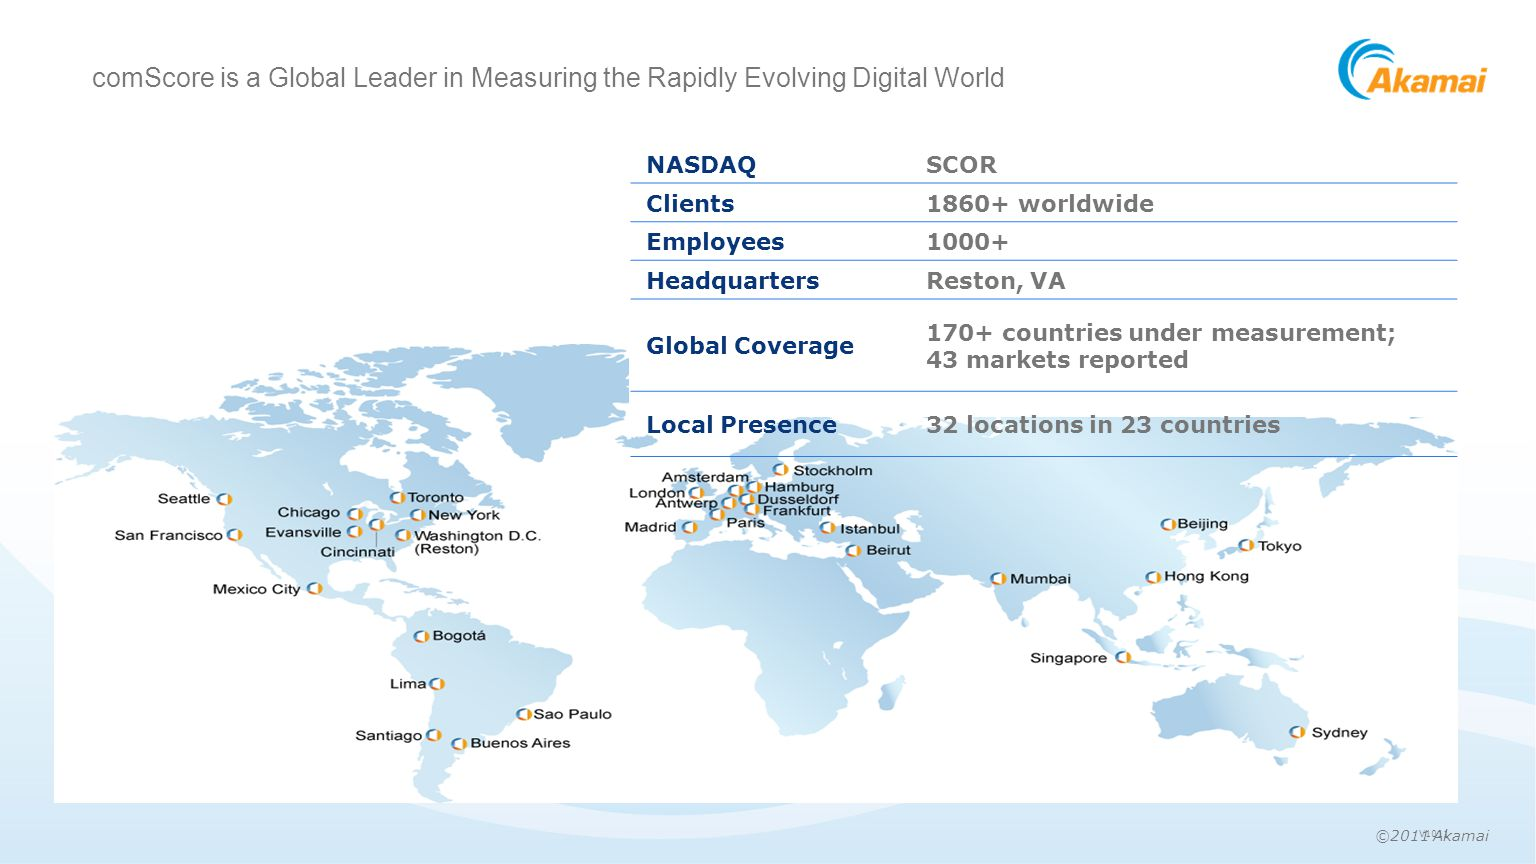 ©2011 Akamai NASDAQSCOR Clients1860+ worldwide Employees1000+ HeadquartersReston, VA Global Coverage 170+ countries under measurement; 43 markets reported Local Presence32 locations in 23 countries comScore is a Global Leader in Measuring the Rapidly Evolving Digital World V1011